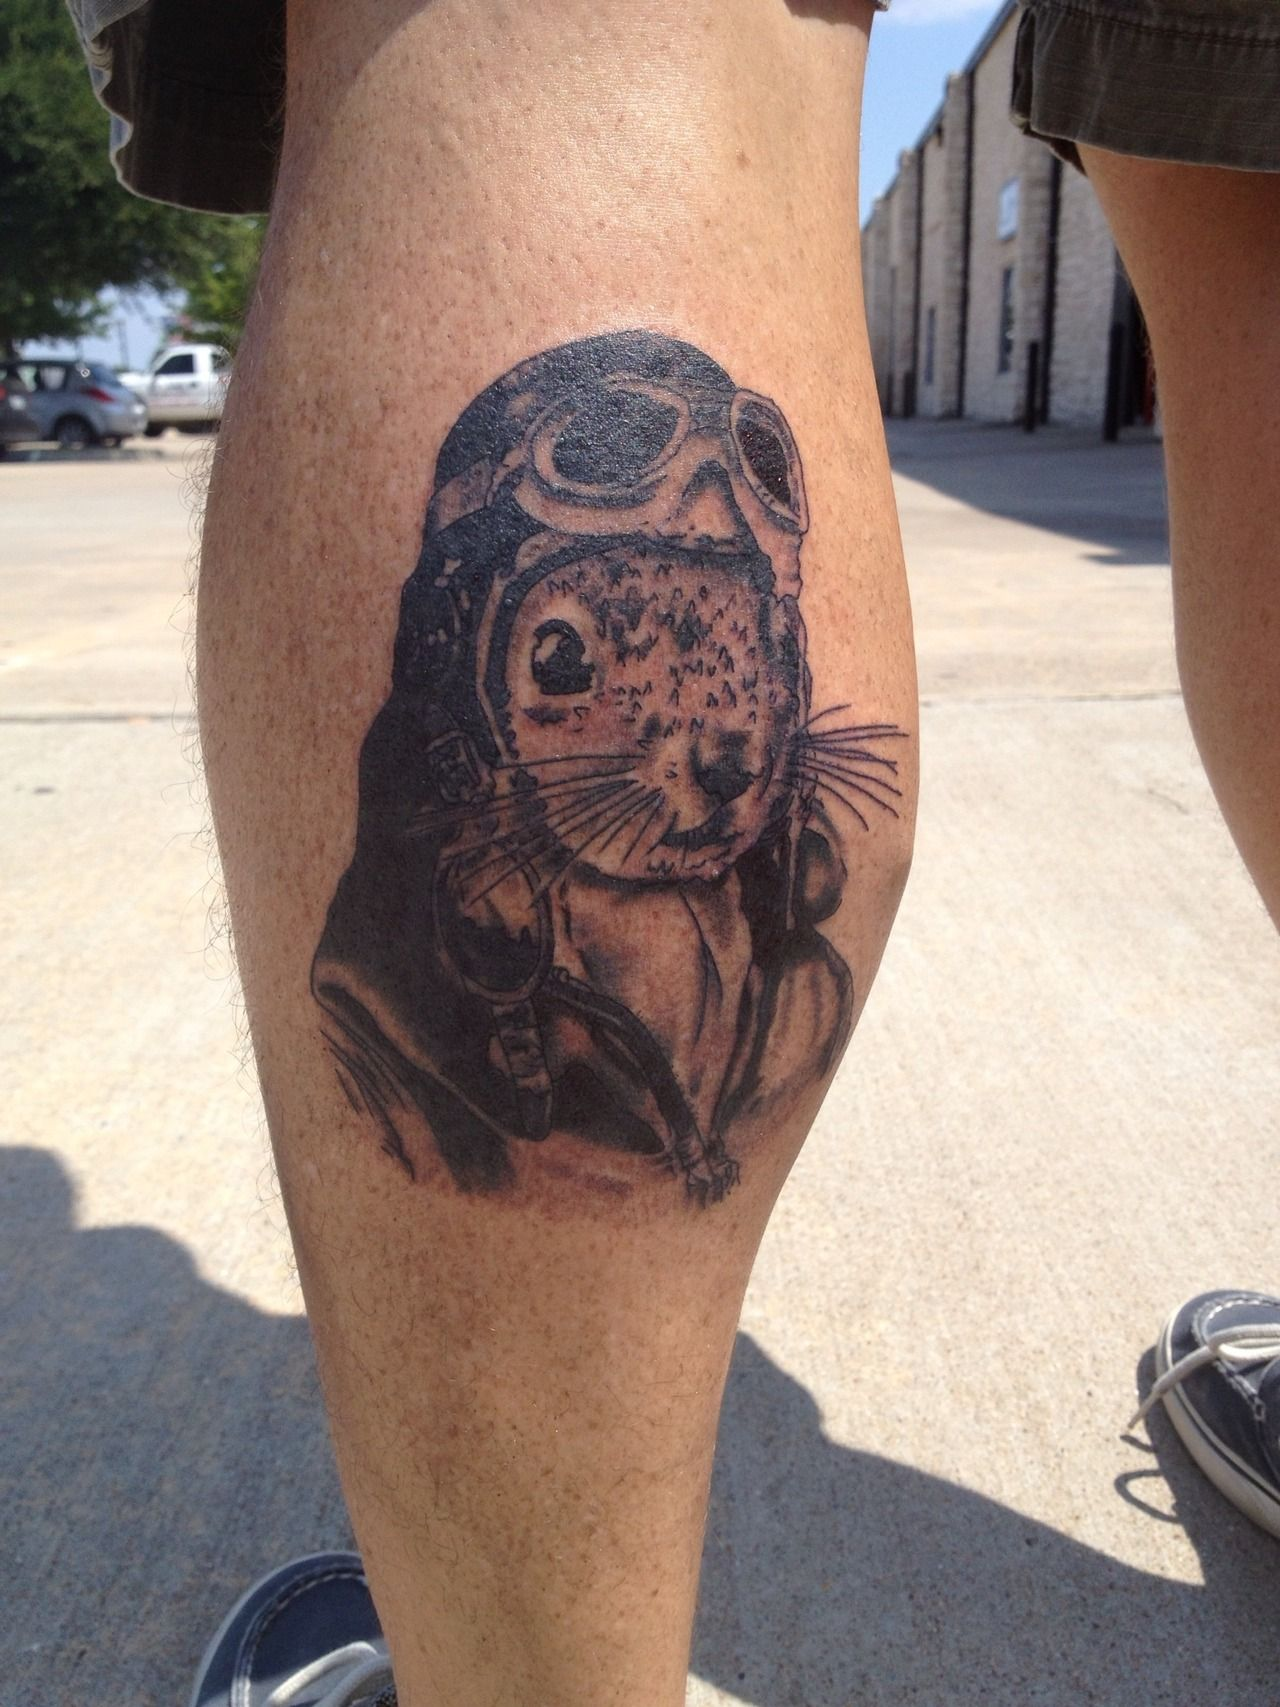 Flying squirrel done by mike carter at inkinc in mckinney